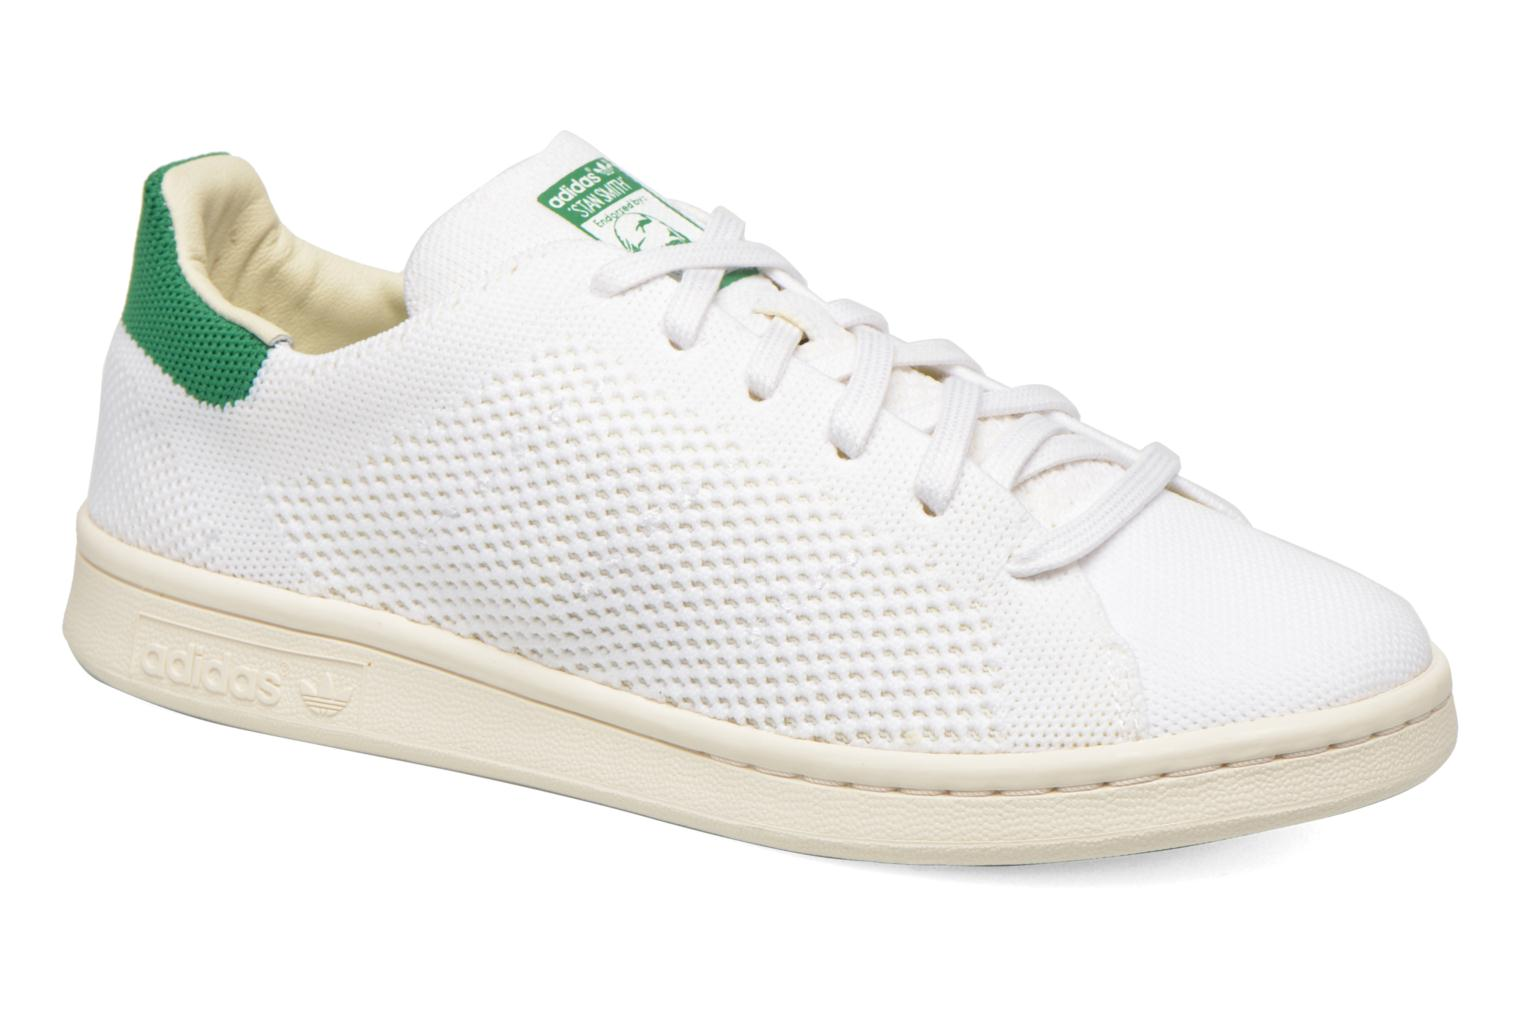 Stan Smith Og Pk Ftwbla/Ftwbla/Blacra